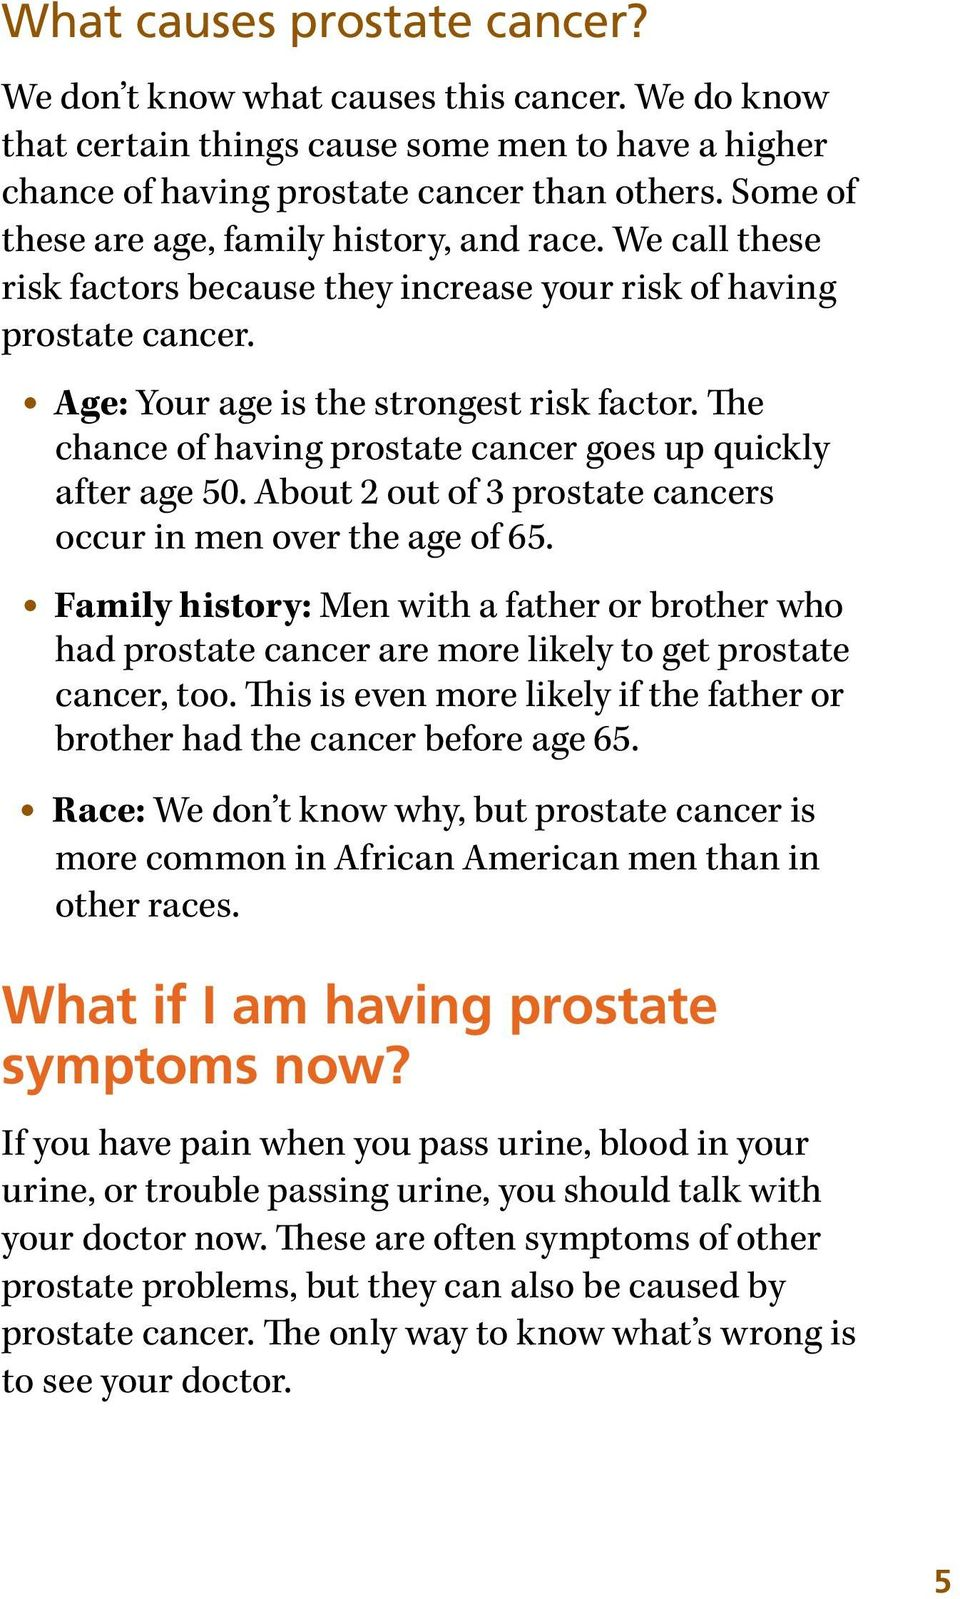 The chance of having prostate cancer goes up quickly after age 50. About 2 out of 3 prostate cancers occur in men over the age of 65.